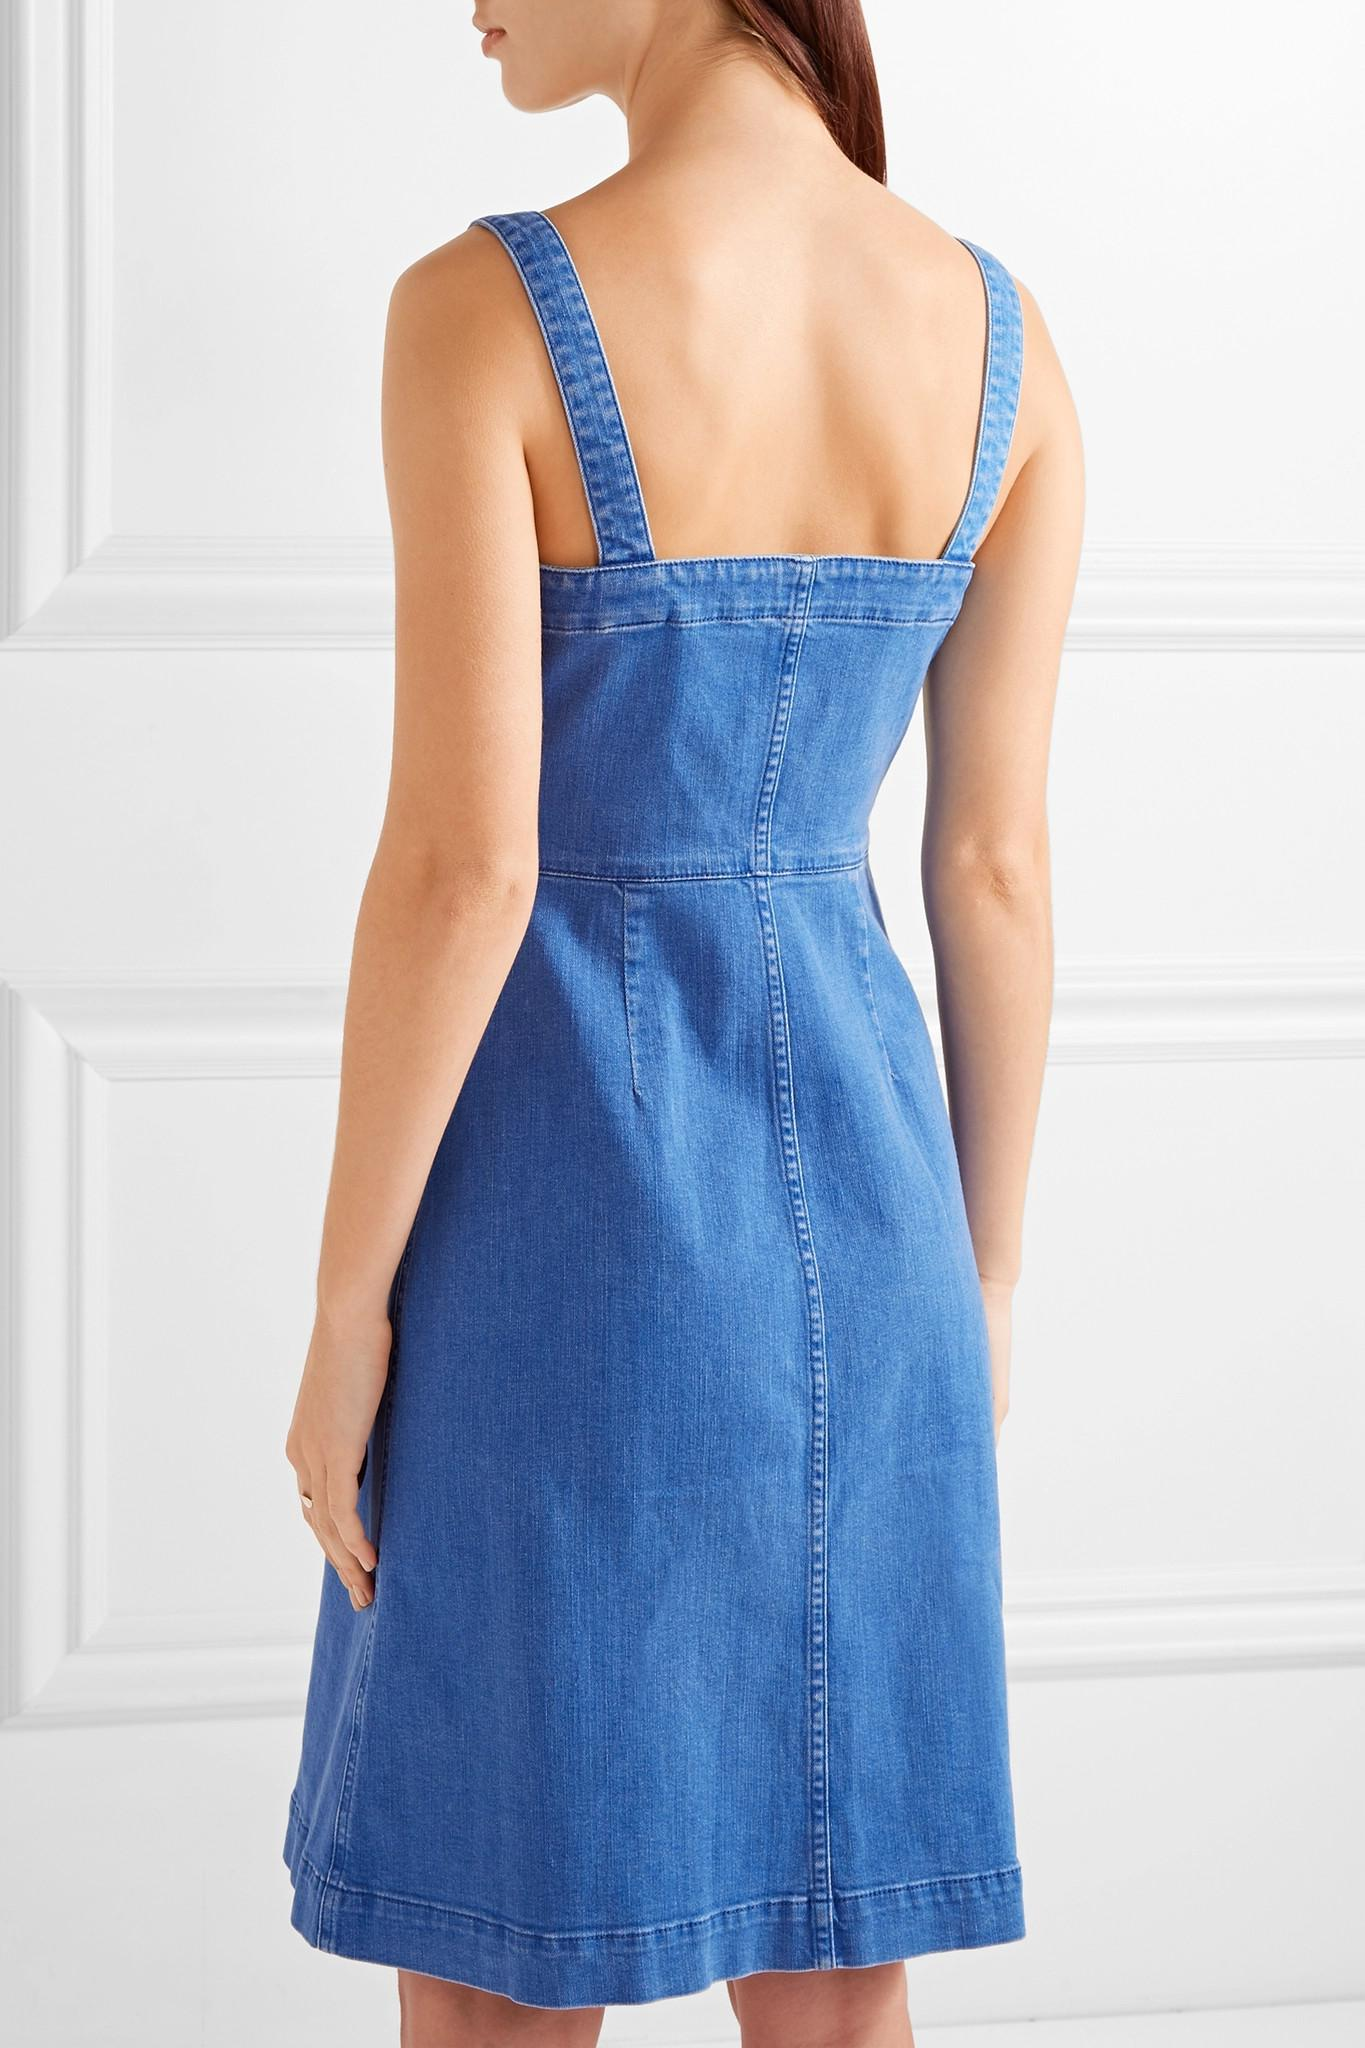 457cd6d3e6 Lyst - Stella mccartney Linda Stretch-denim Dress in Blue